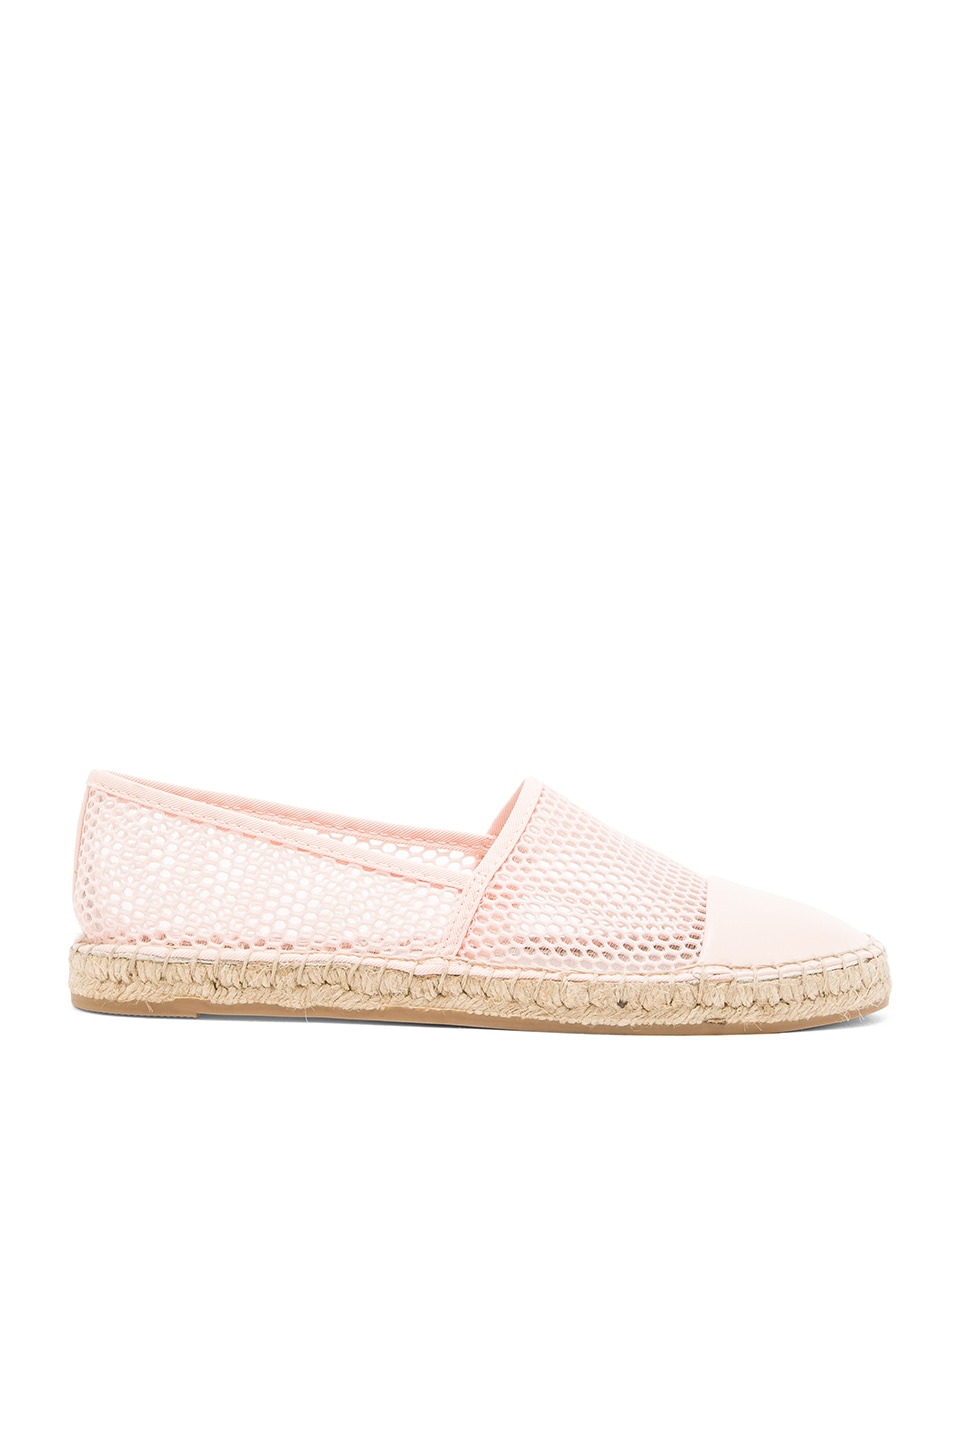 Circus by Sam Edelman Lena Flat in Pink Whisper